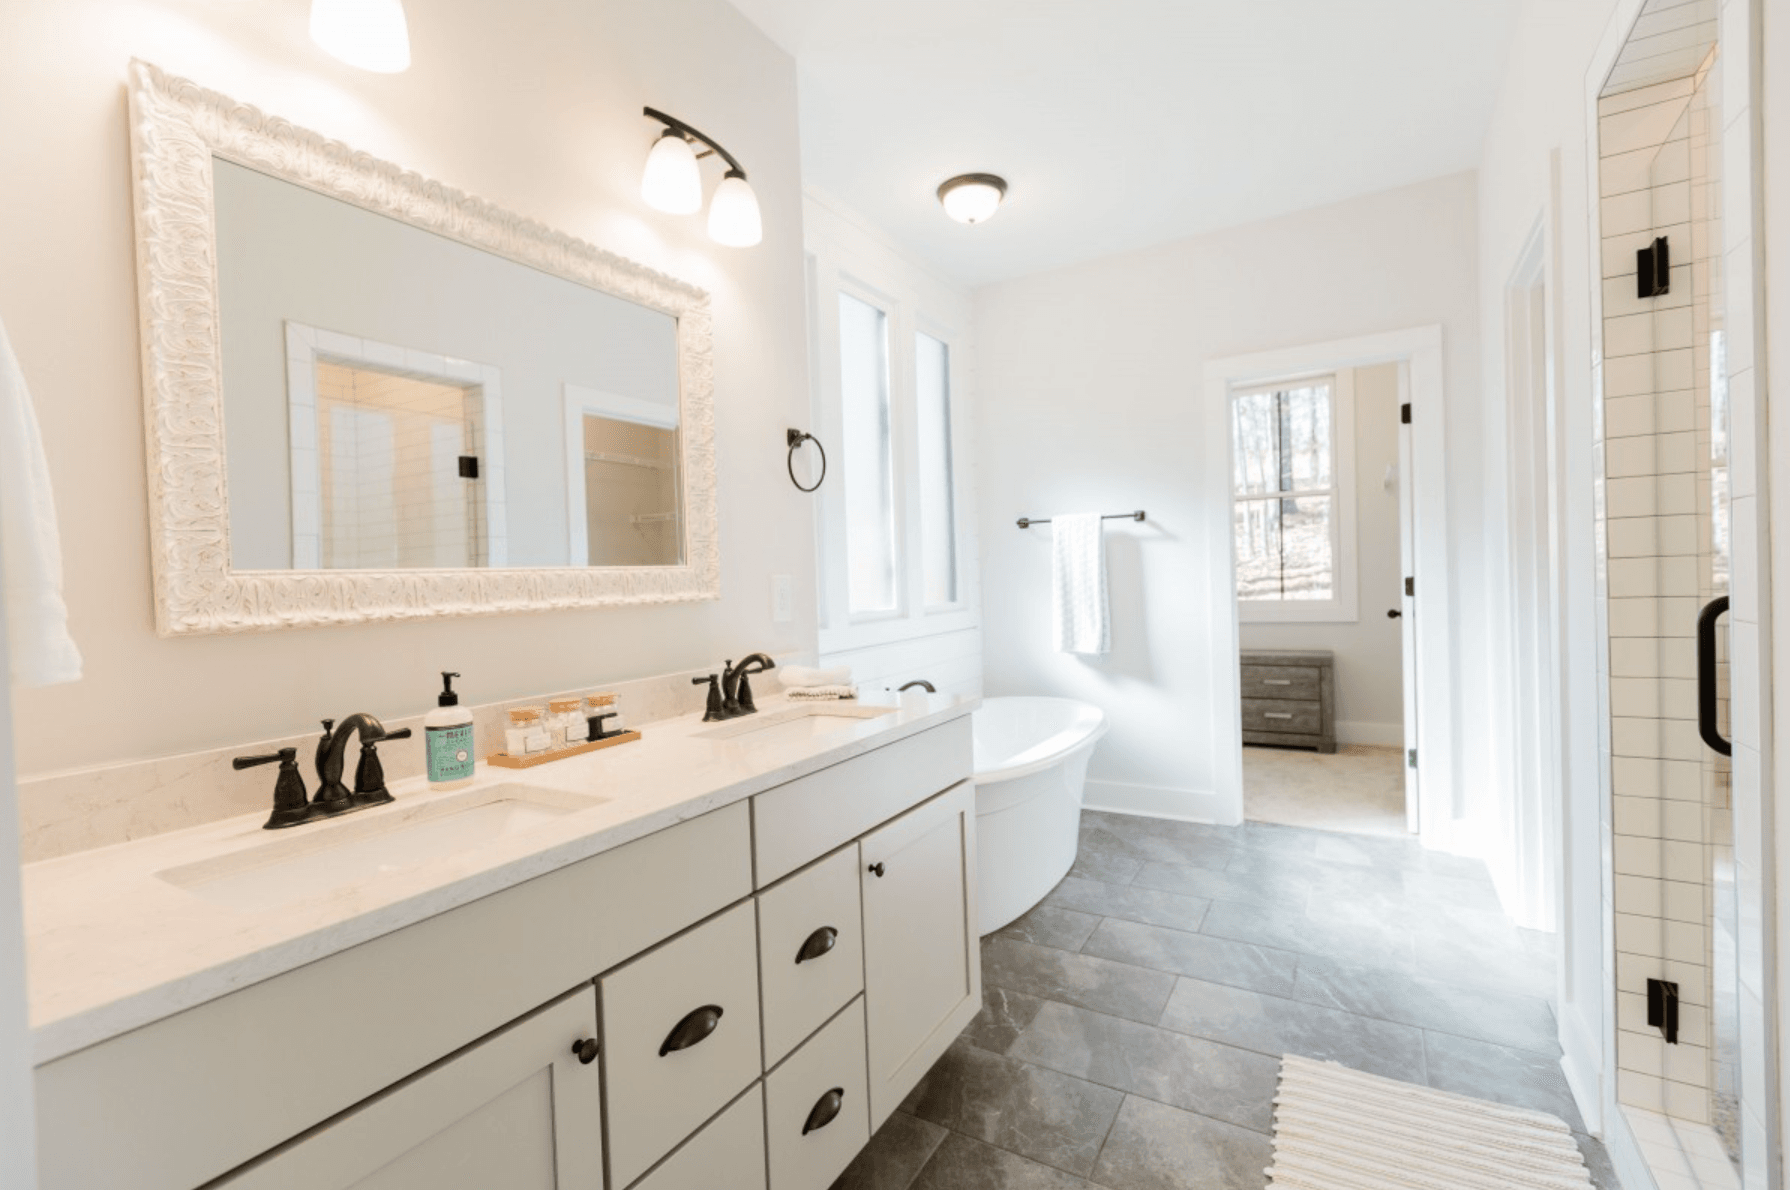 Bathroom featured in The Farmville Cottage 3 Car w/ MIL By Holland Homes in Auburn-Opelika, AL